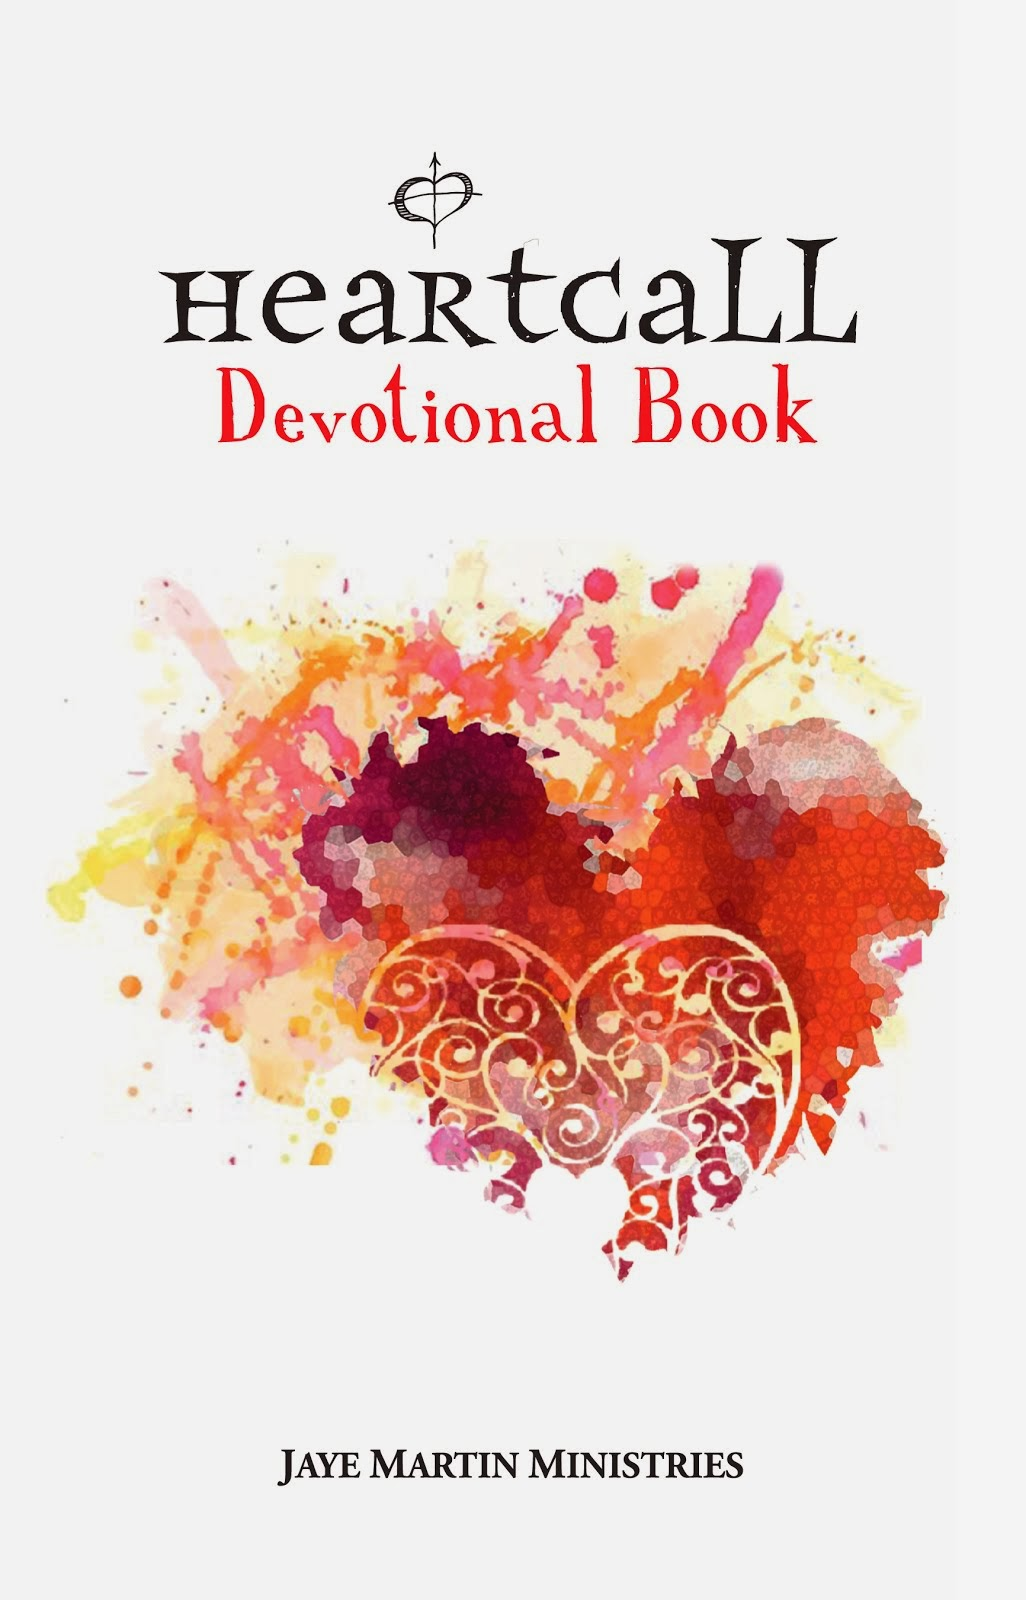 HeartCall Devotional Book